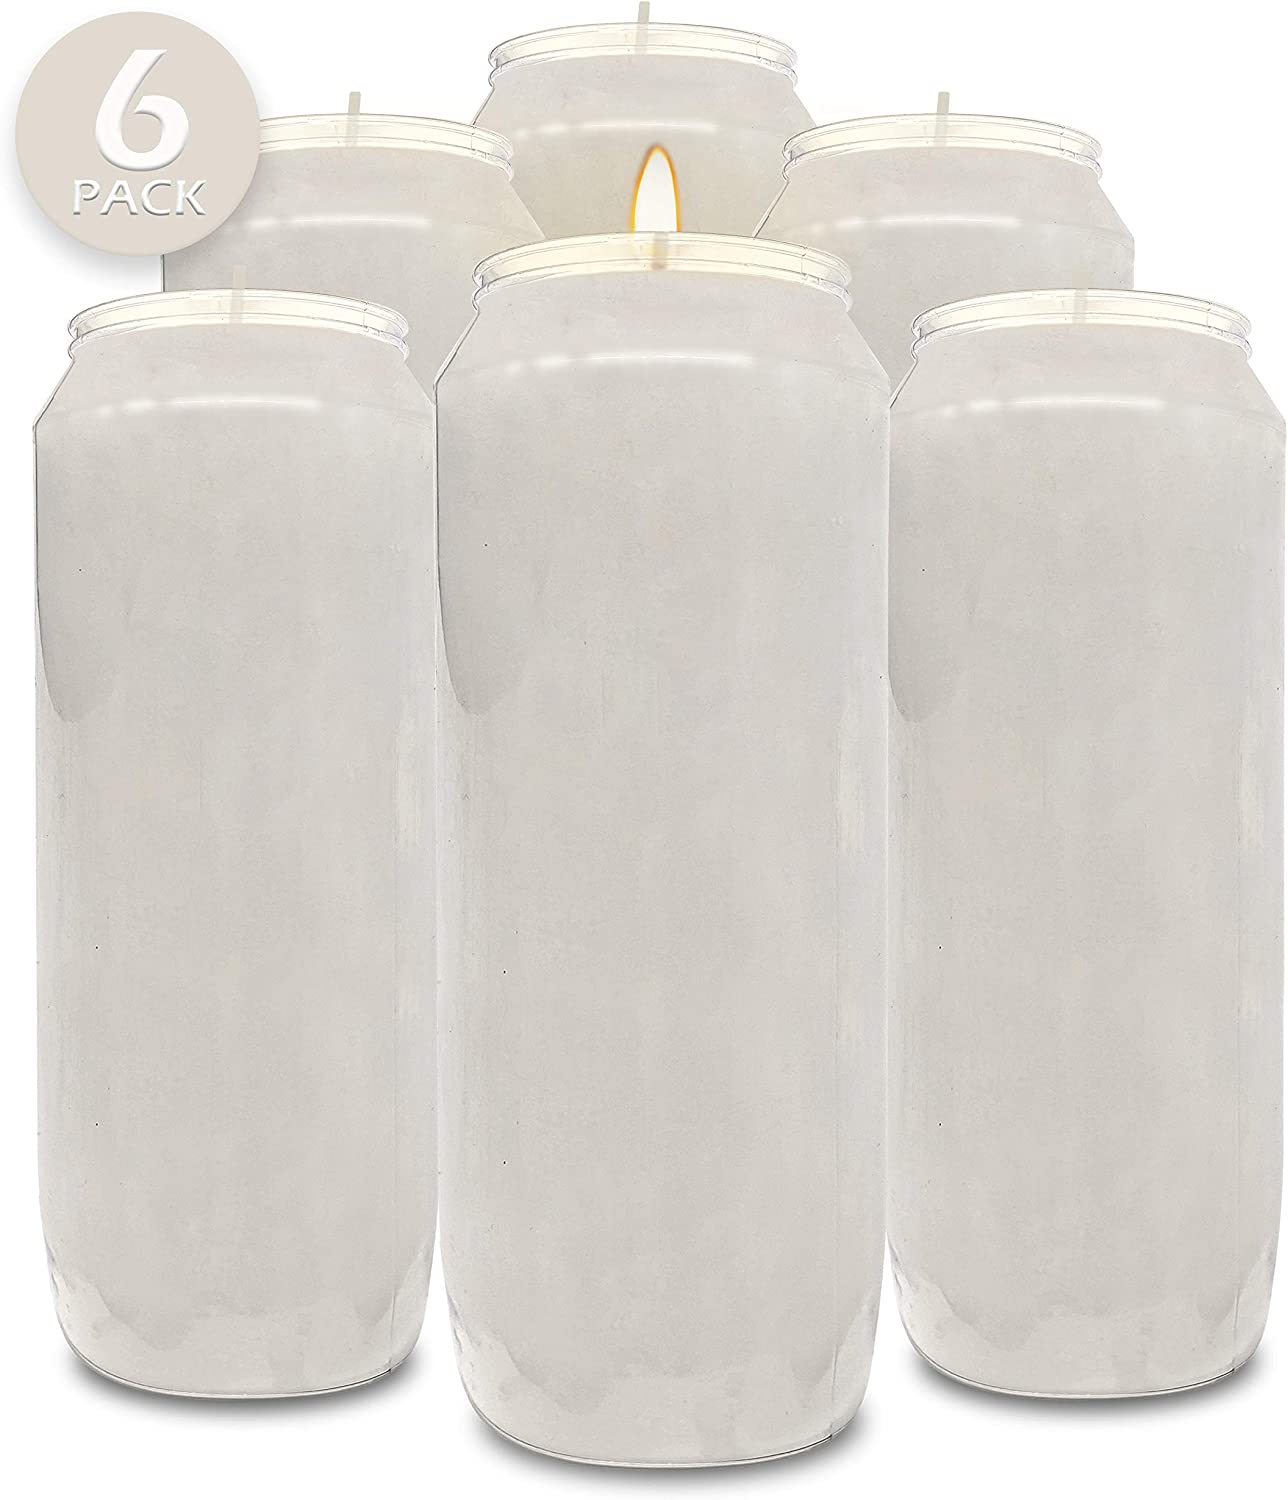 "Hyoola 9 Day White Prayer Candles, 6 Pack - 7"" Tall Pillar Candles for Religious, Memorial, Party Decor, Vigil and Emergency Use - Vegetable Oil Wax in Plastic Jar Container"